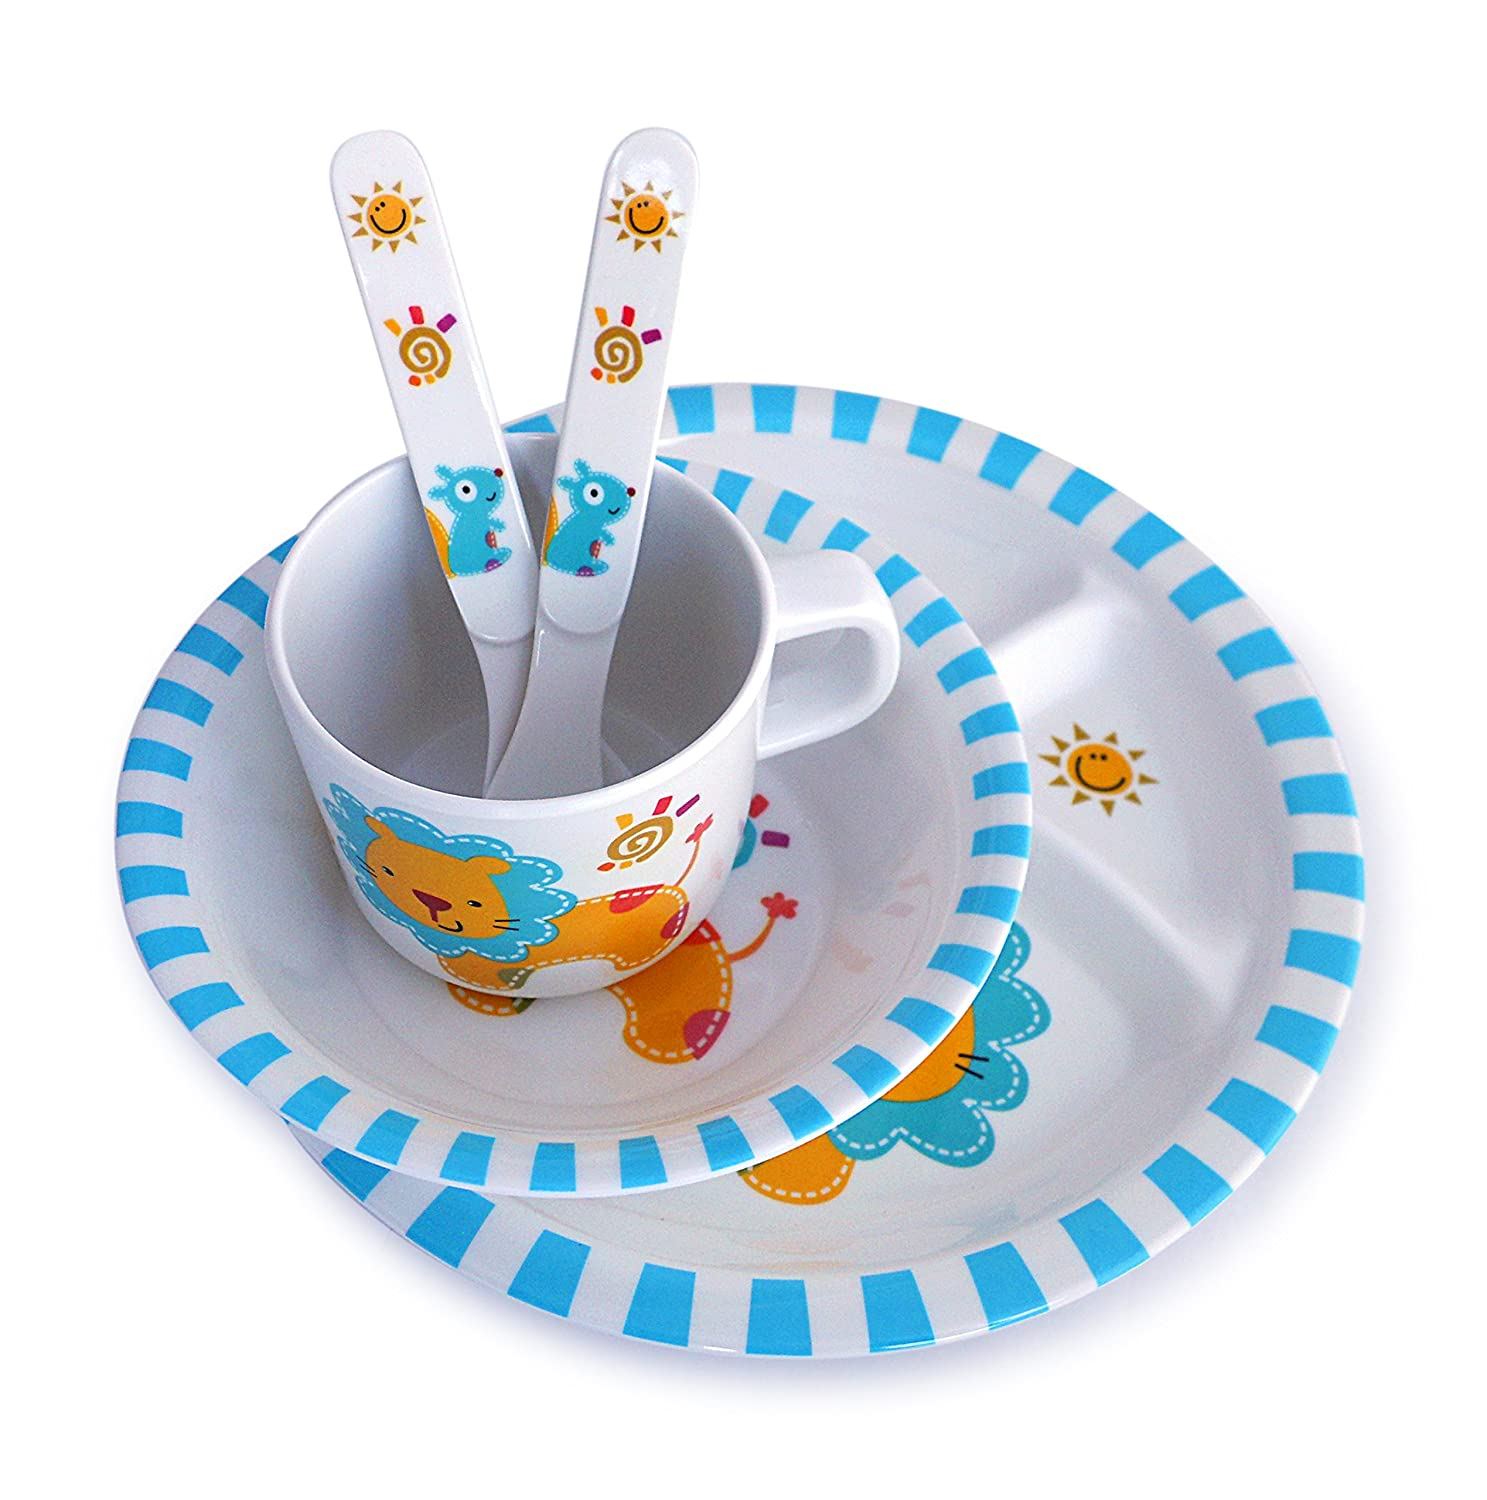 sc 1 st  Amazon.com & Amazon.com: Culina Kids Melamine Dinnerware - Lion. Set of 5: Baby